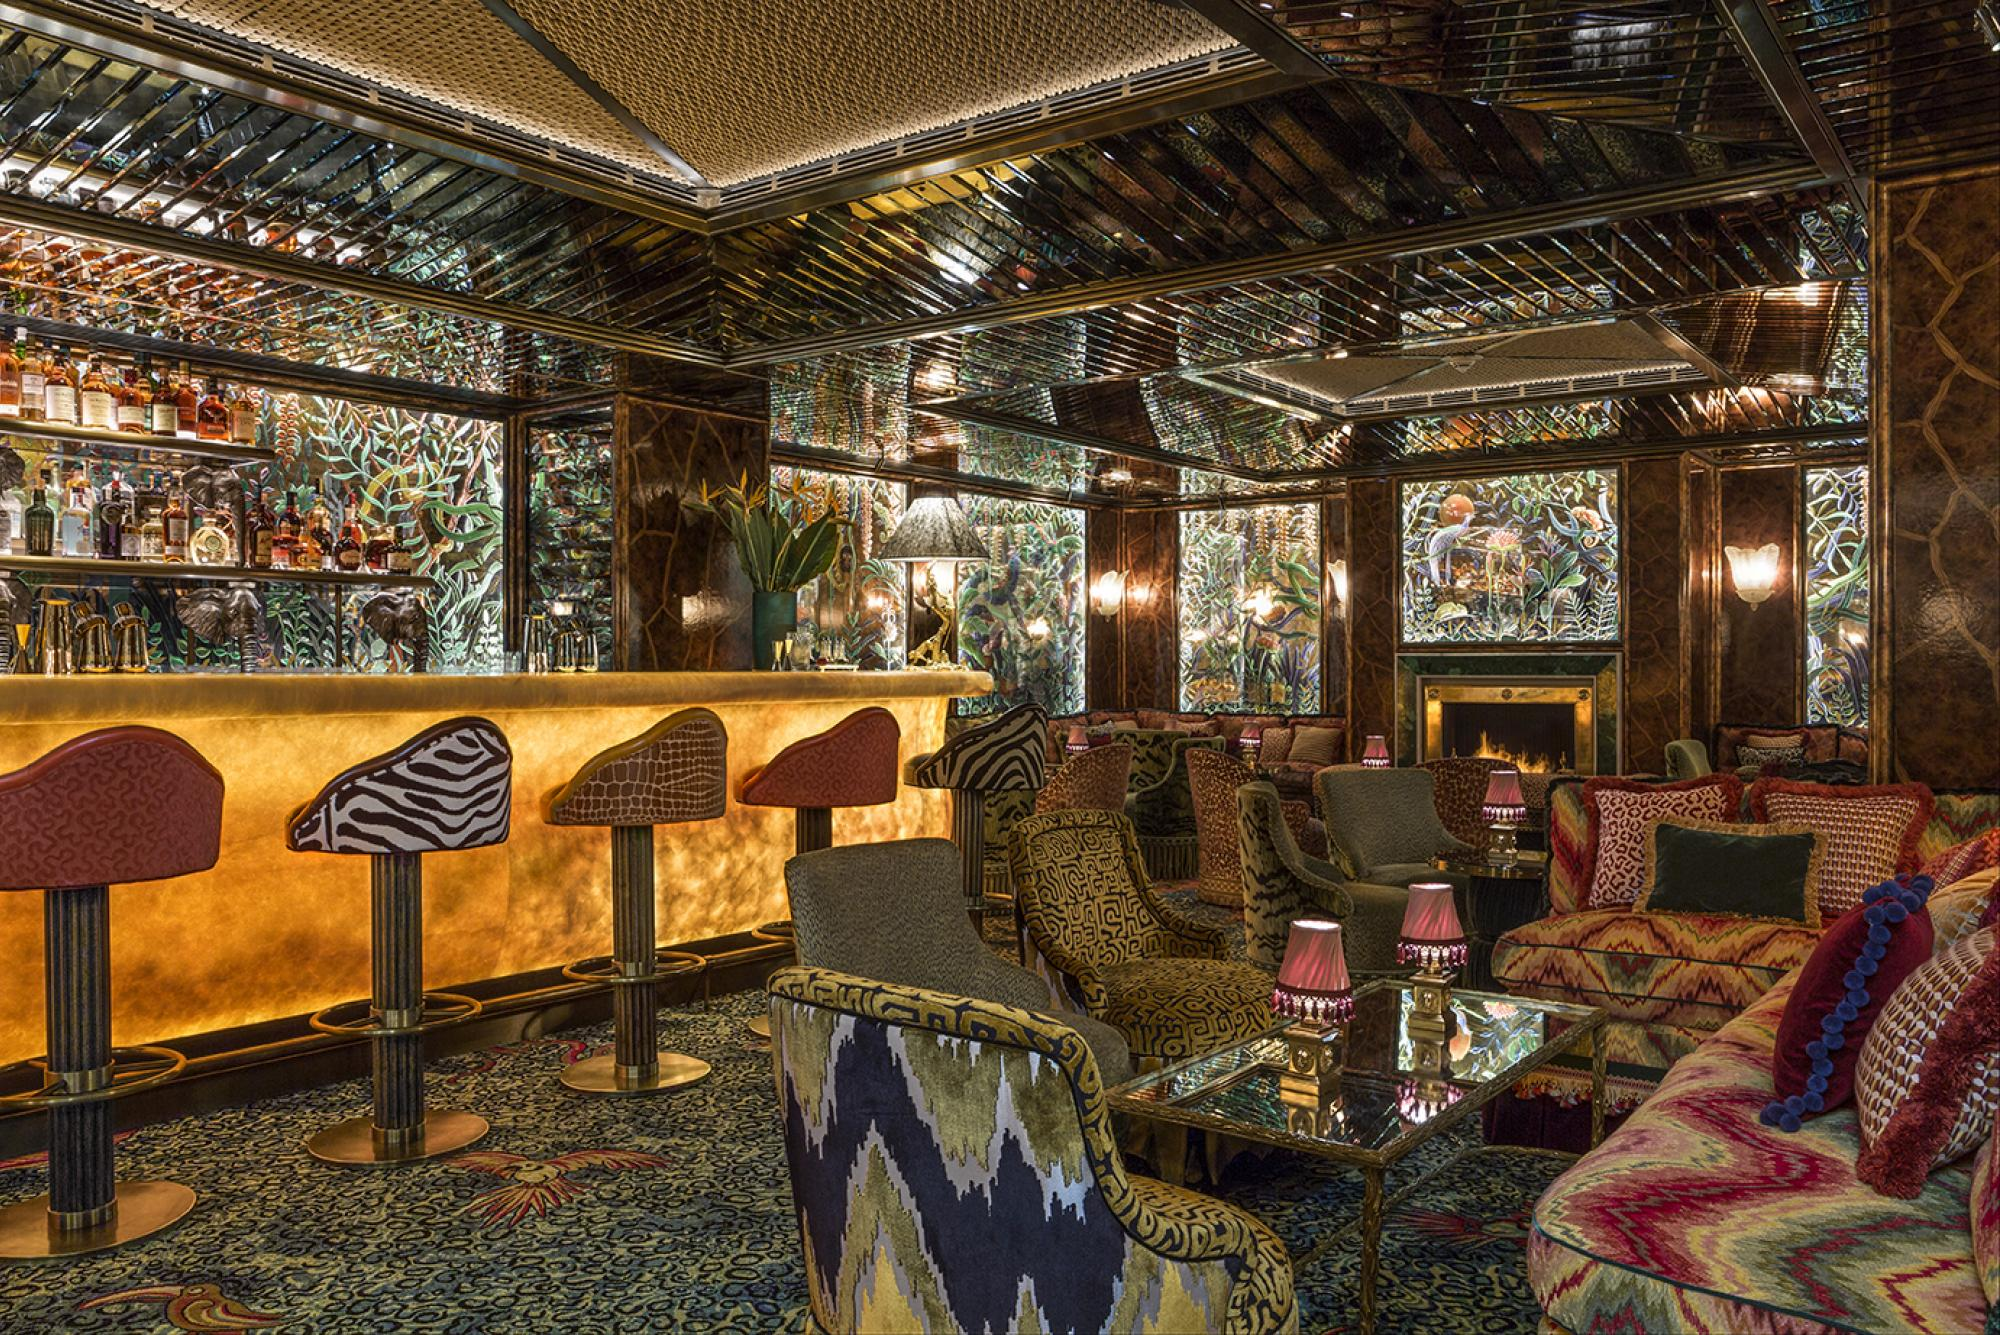 Interior Designers: The Top 10 Designers in London You Need to Know interior designers Interior Designers: The Top 10 Designers in London You Need to Know 180226 Annabels4684 v2